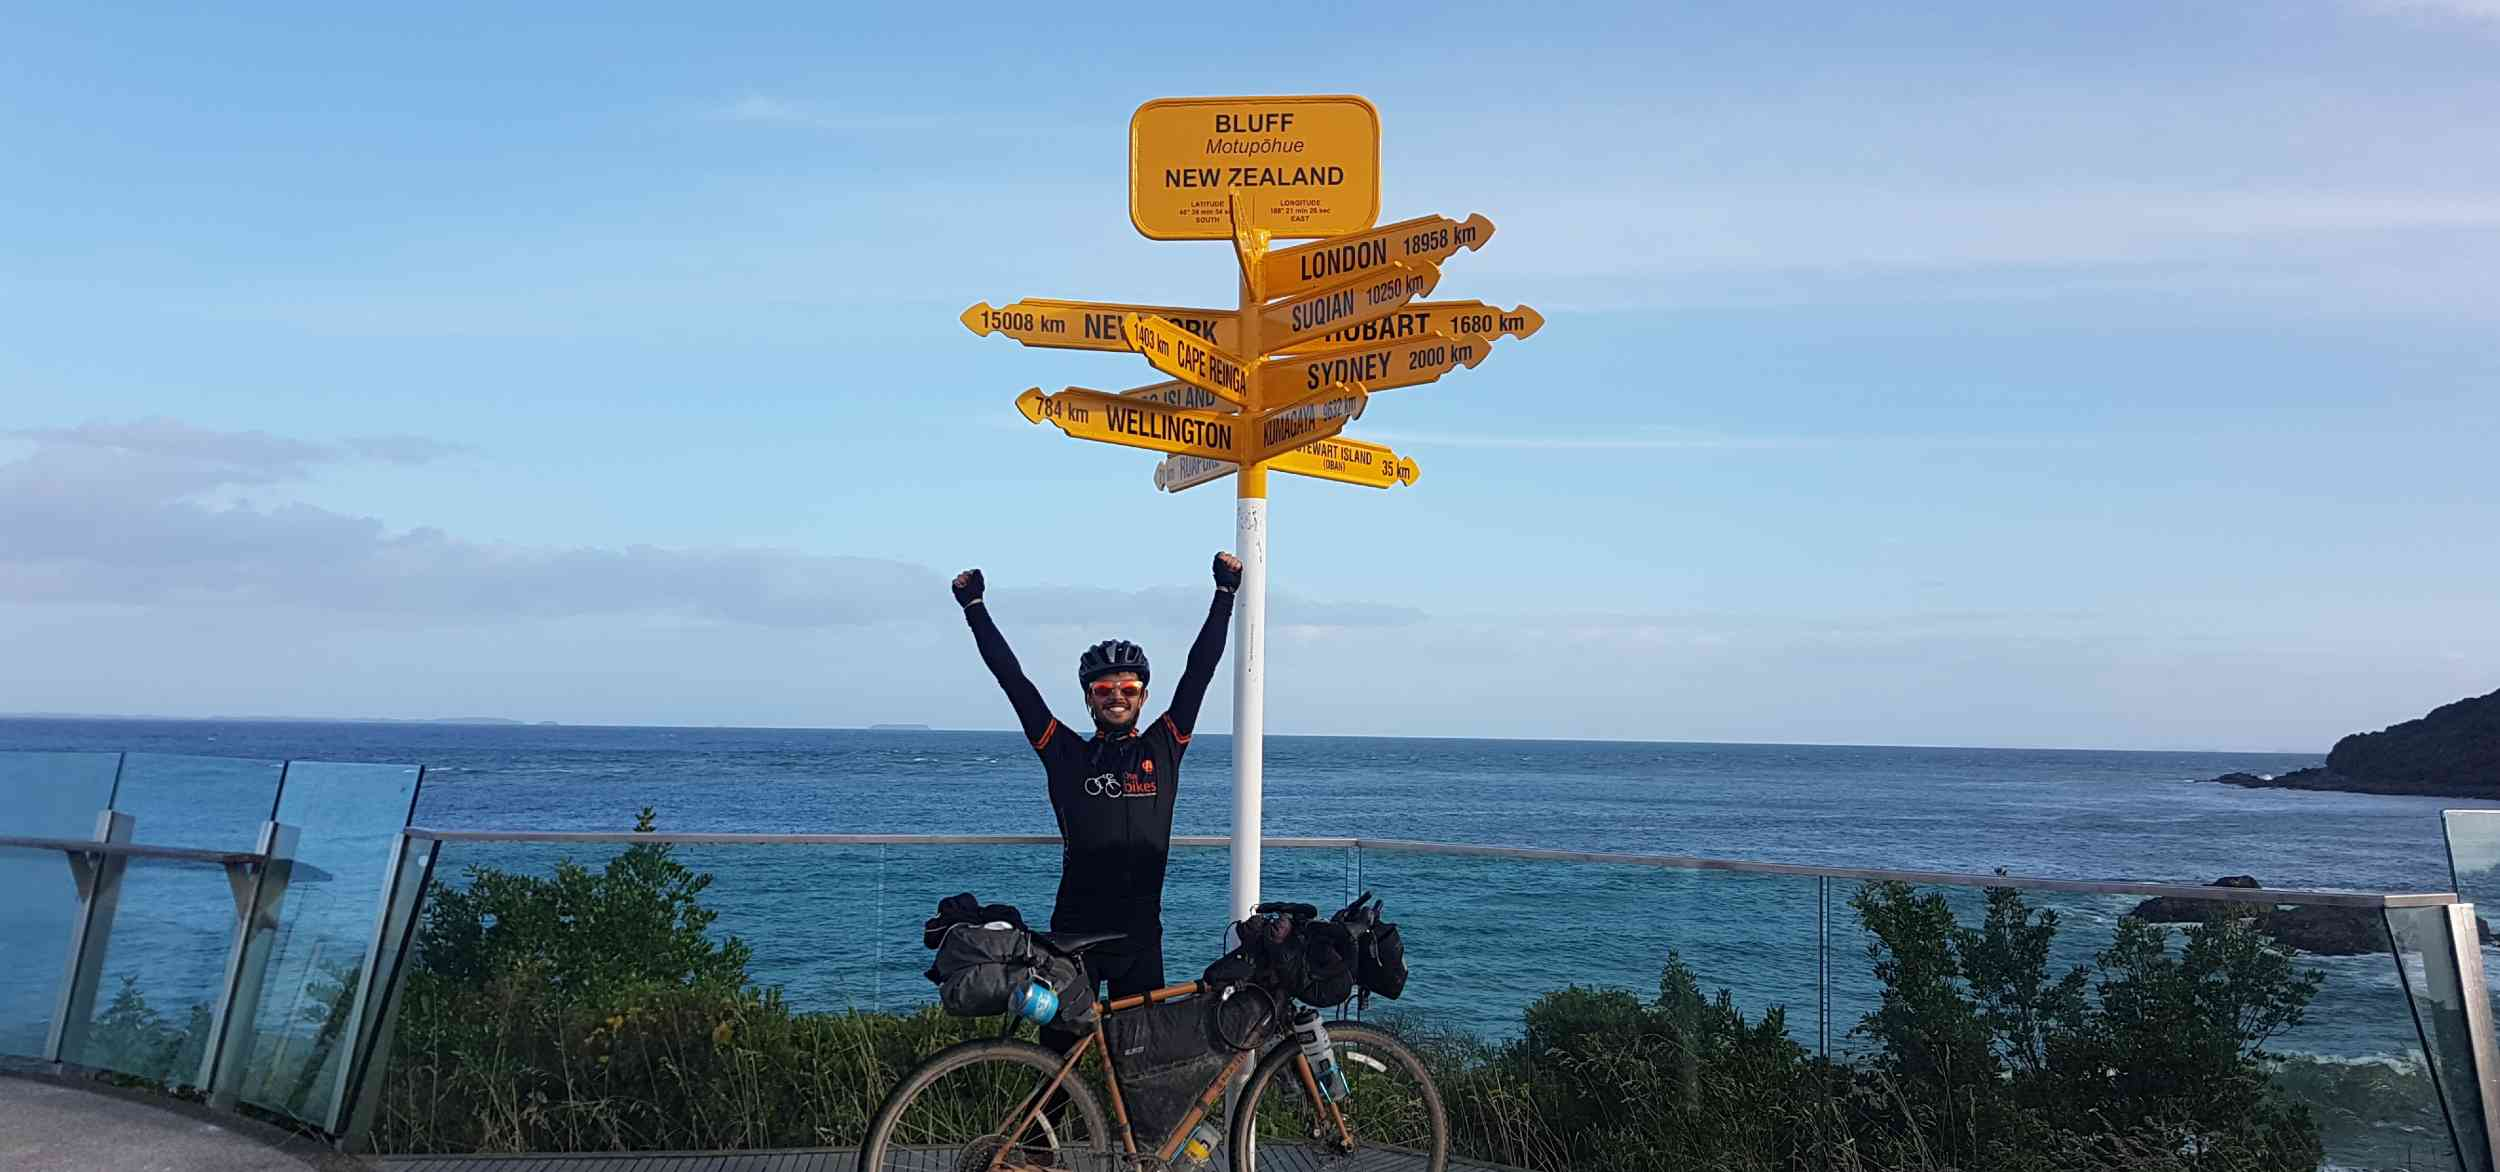 A cyclist standing next to his bike with bikepacking bags on it raising his arms in victory sign at Sterling Point